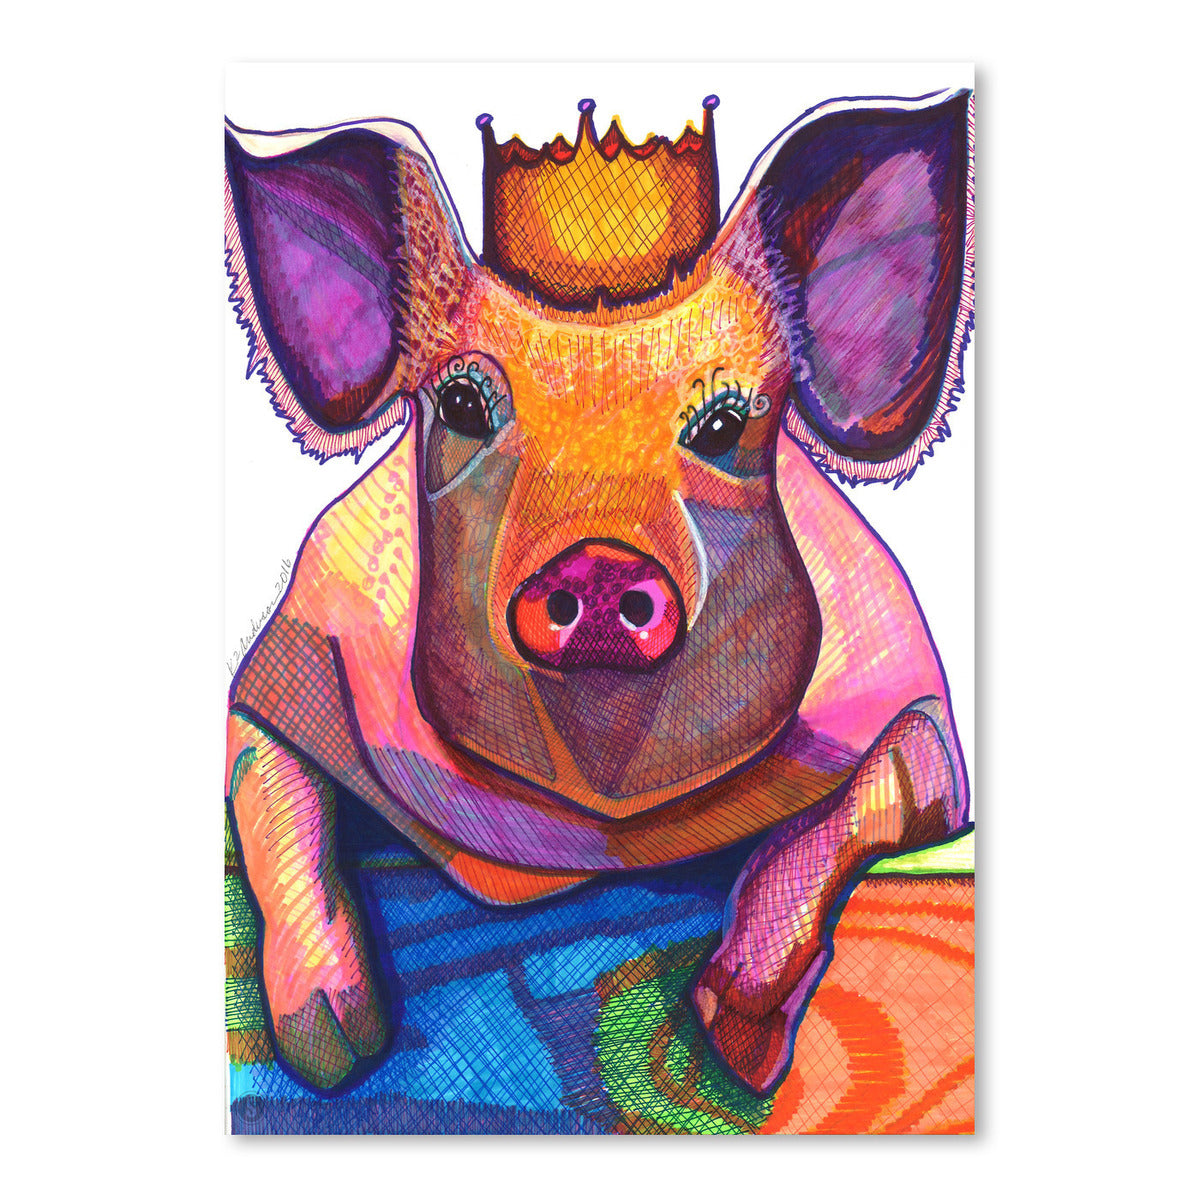 Pig With Crown by Solveig Studio Art Print - Art Print - Americanflat